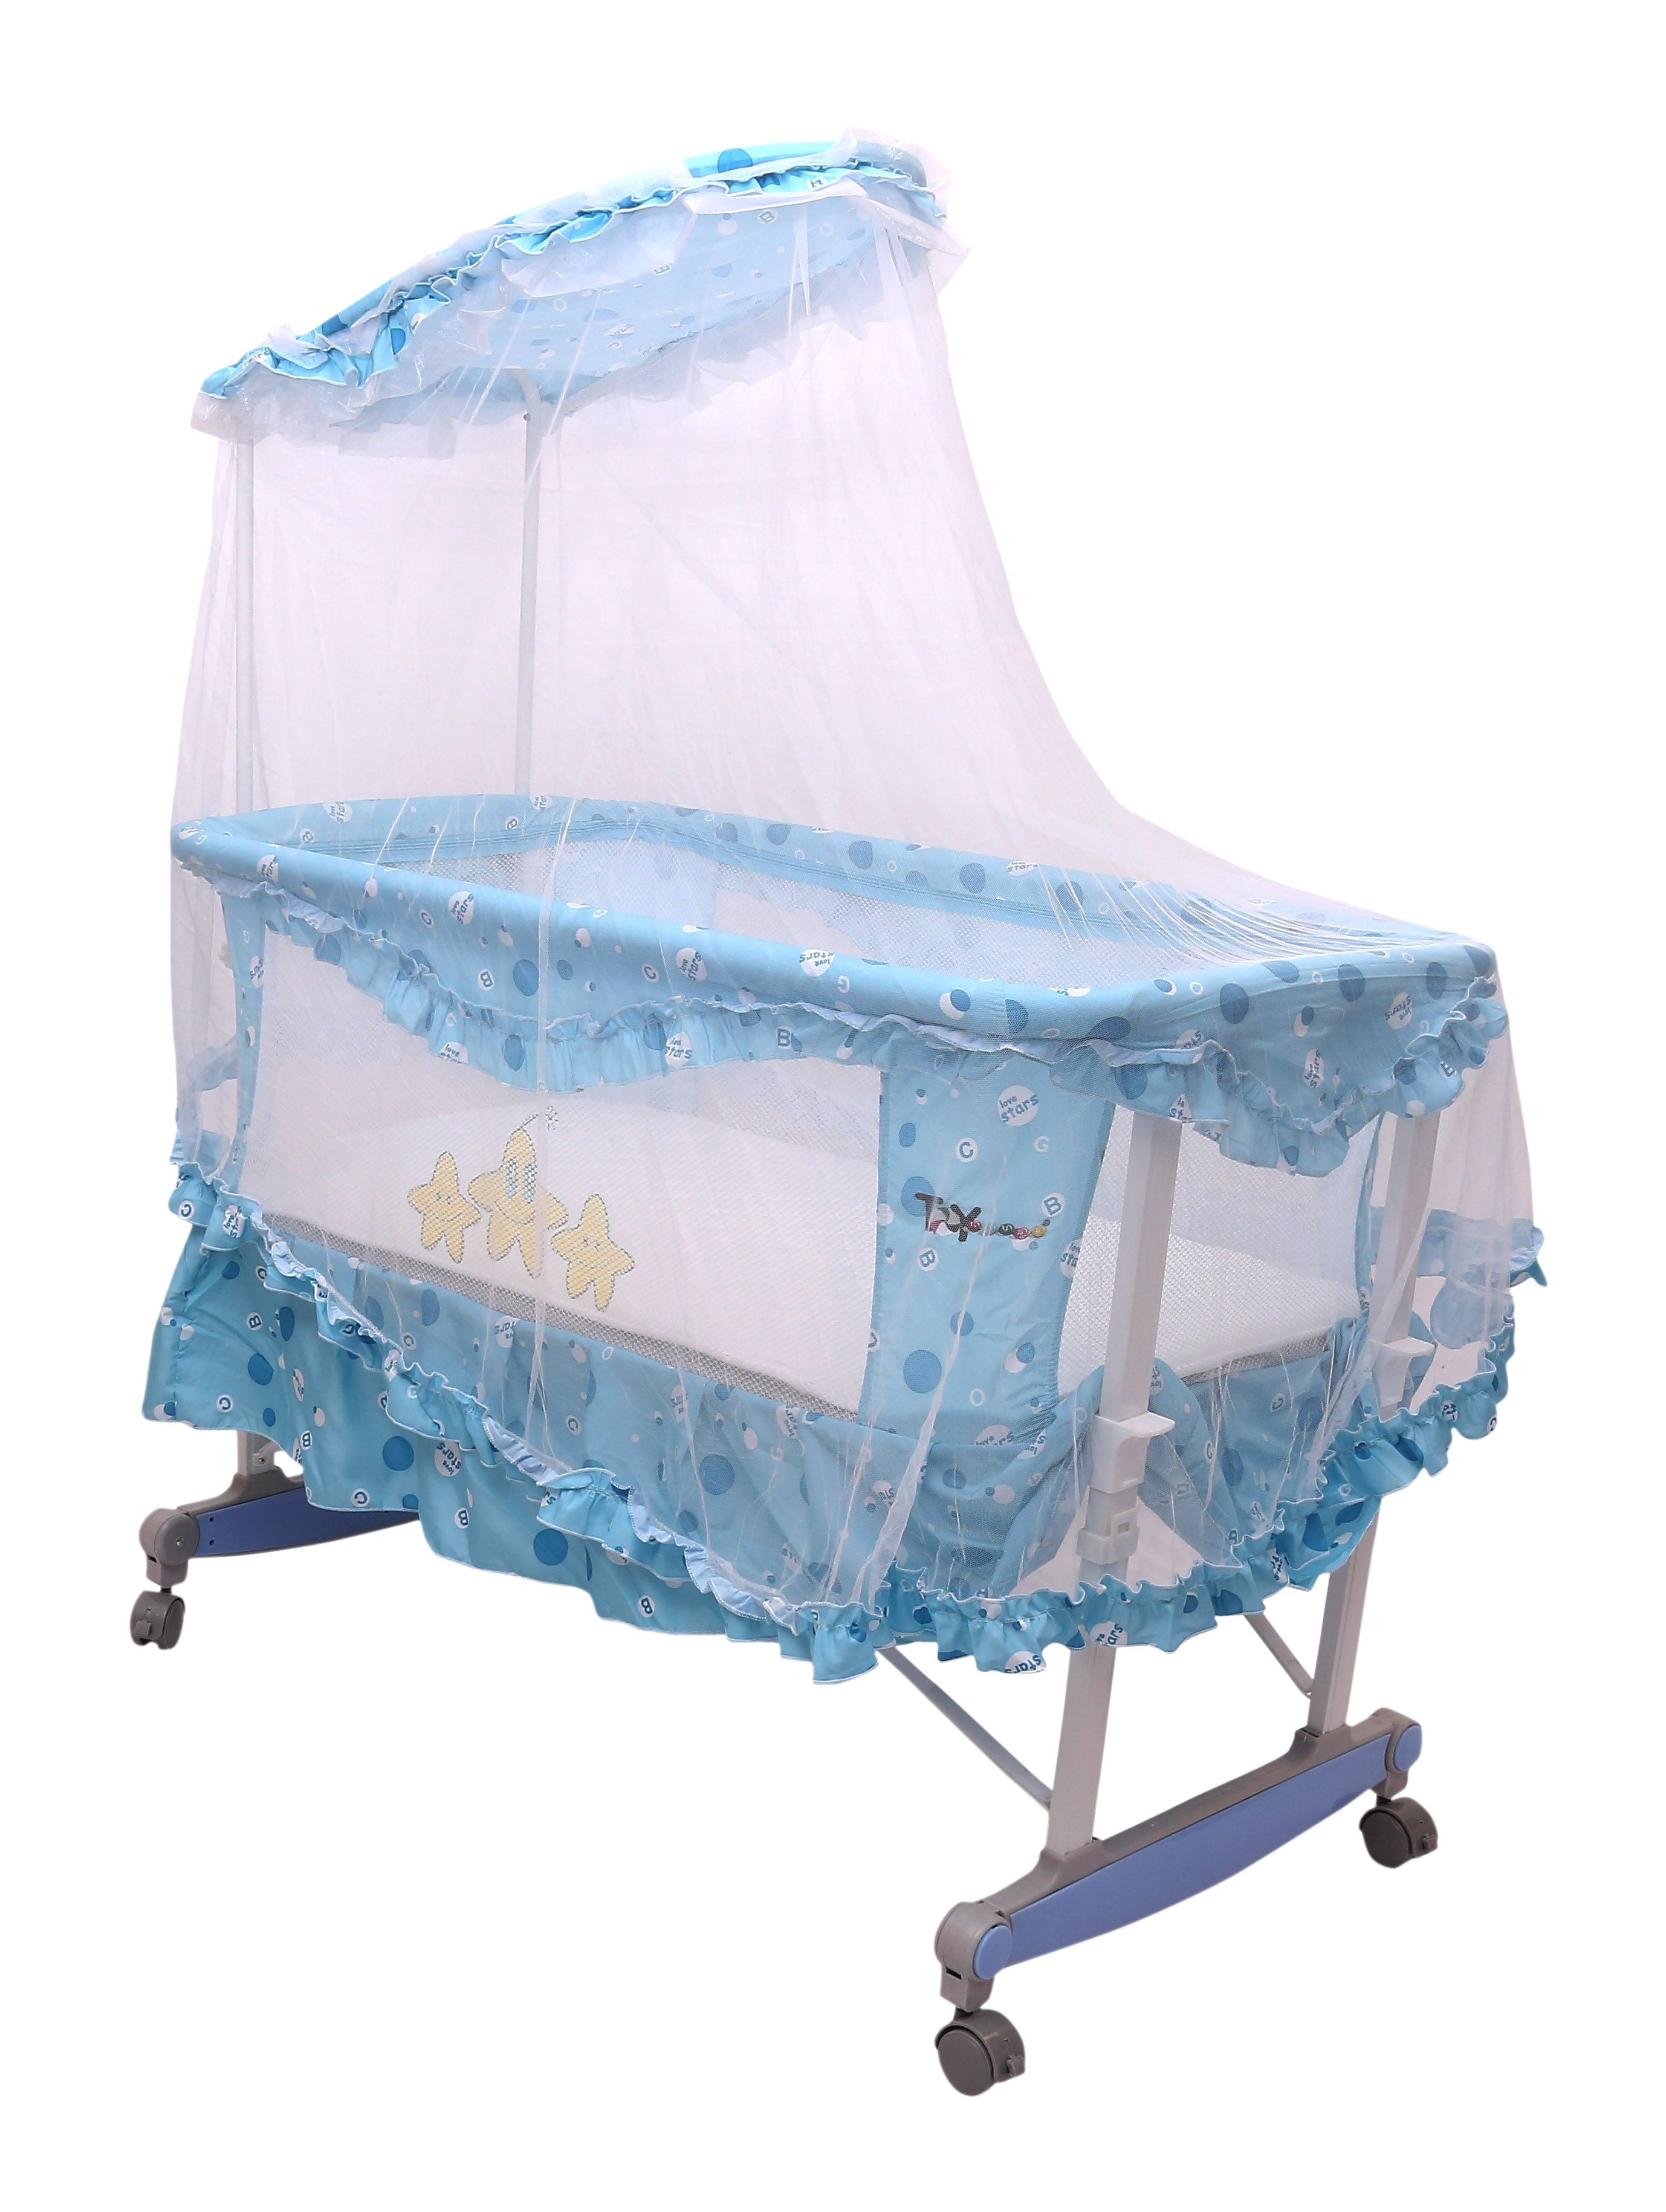 Toyhouse Baby Cradle with Rocking Function